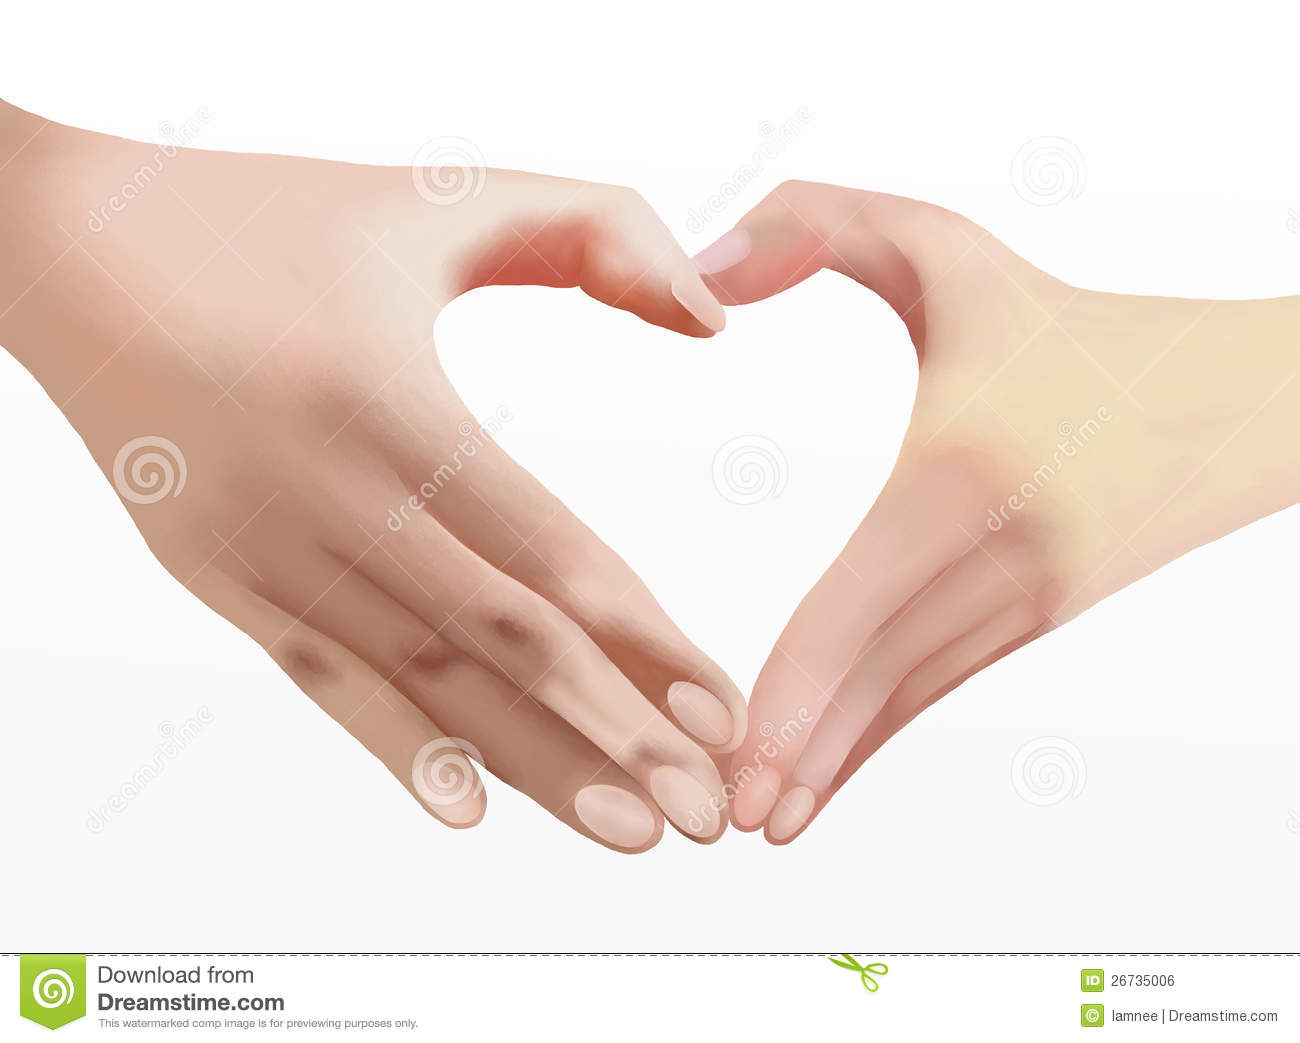 Heart Of Love, Two Hands Make Heart Shape Stock Illustration - Illustration of sign, married ...